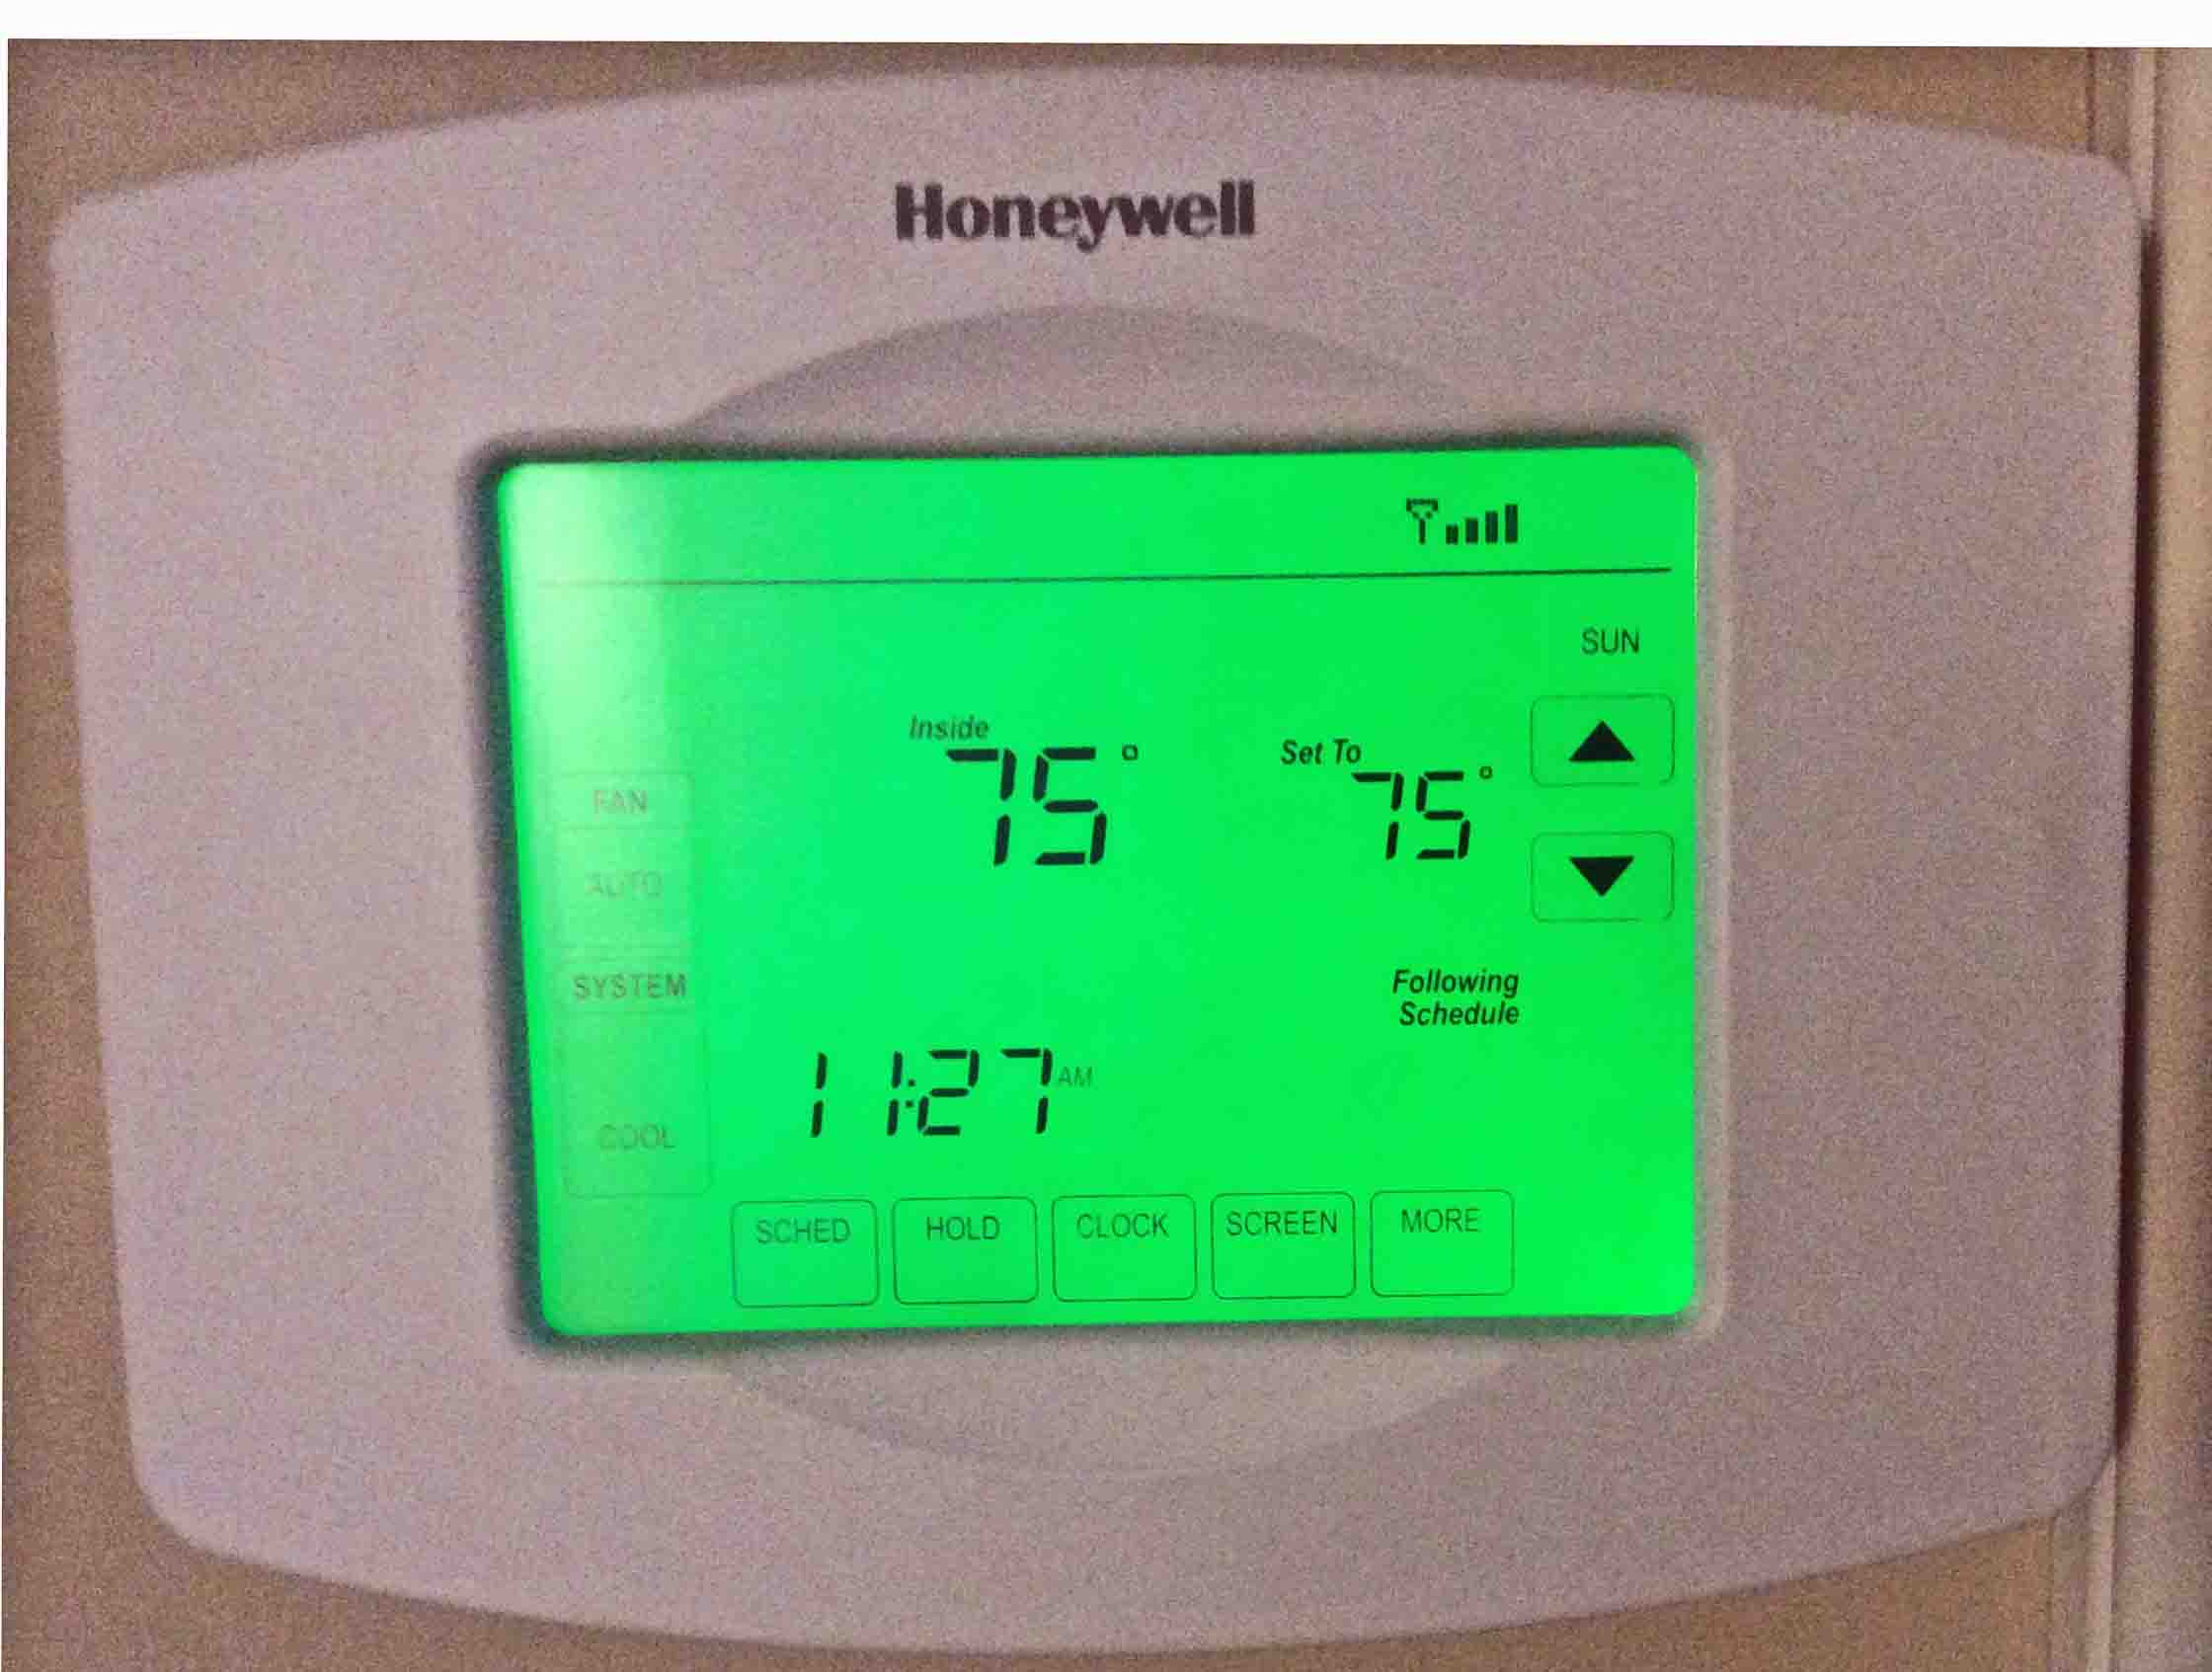 Honeywell 7 Day Wifi Thermostat Manual Chronotherm Iv Plus User